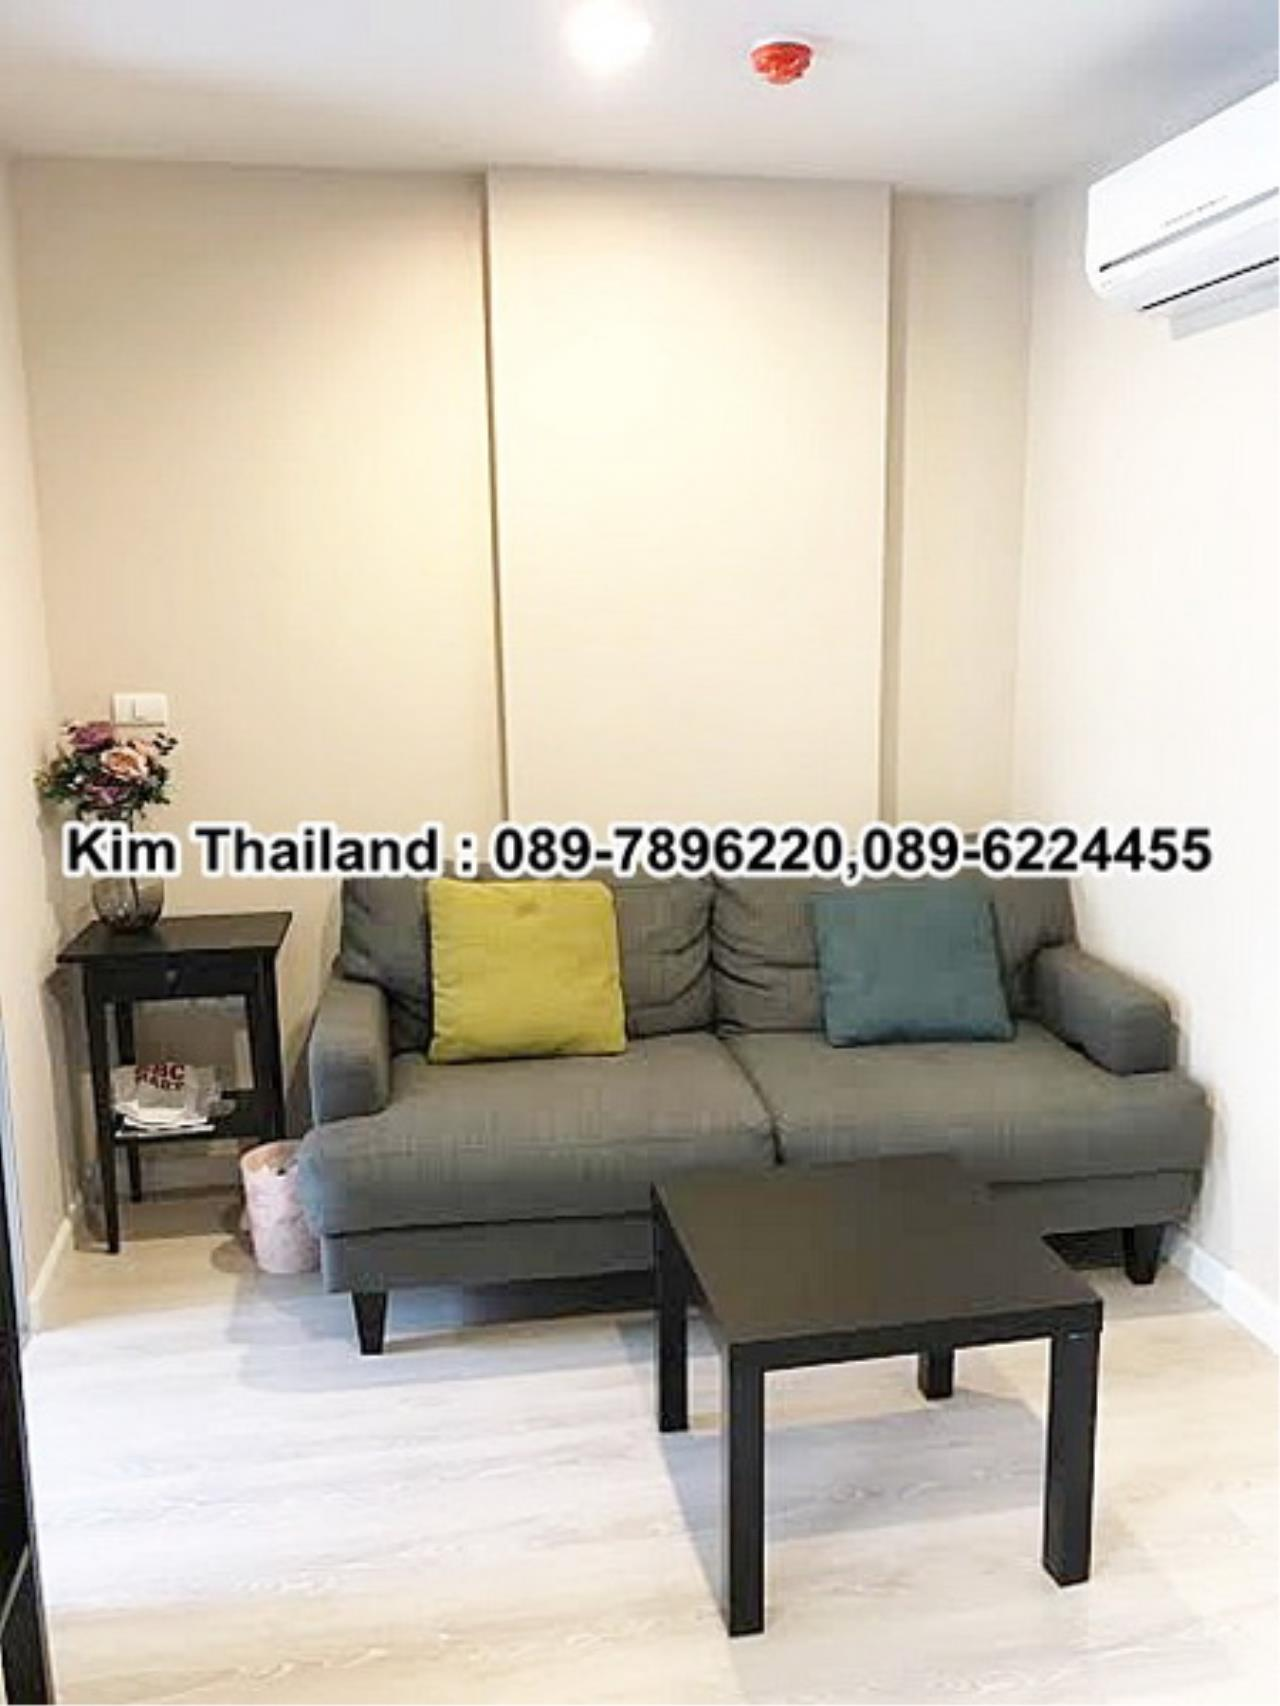 BKKcondorental Agency's For rent, Condo Metroluxe Rama 4., Area 28 sq.m. 1 bedroom. Rental 15,000 THB per month. 1